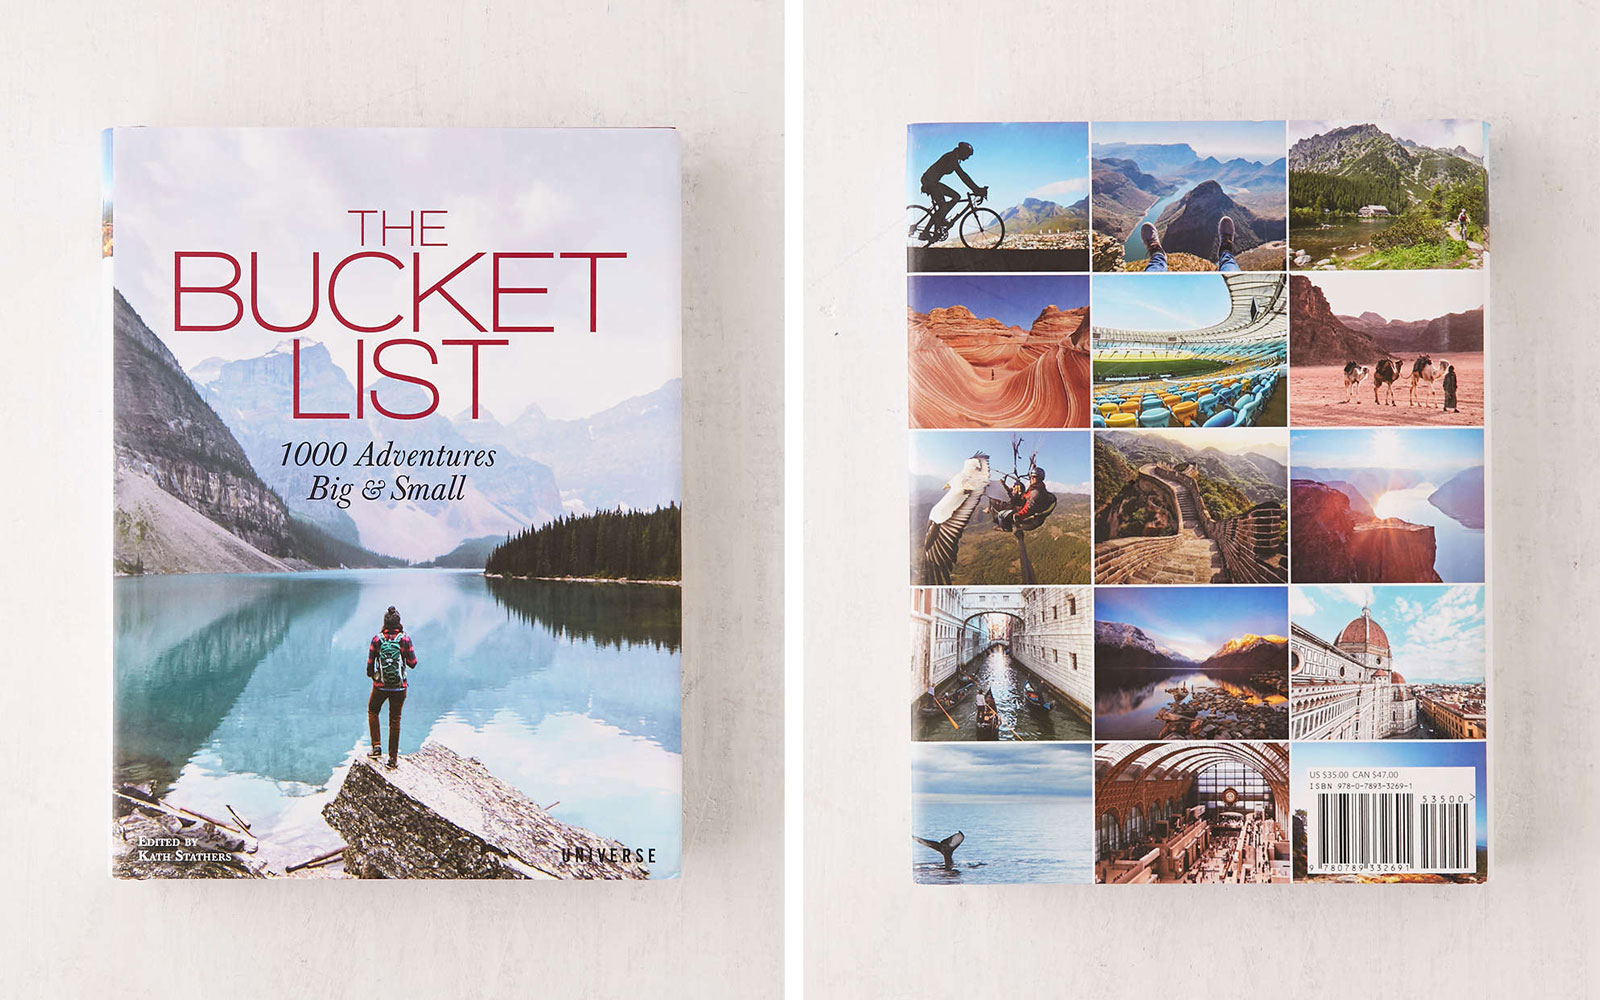 14. 'The Bucket List' Photo Book